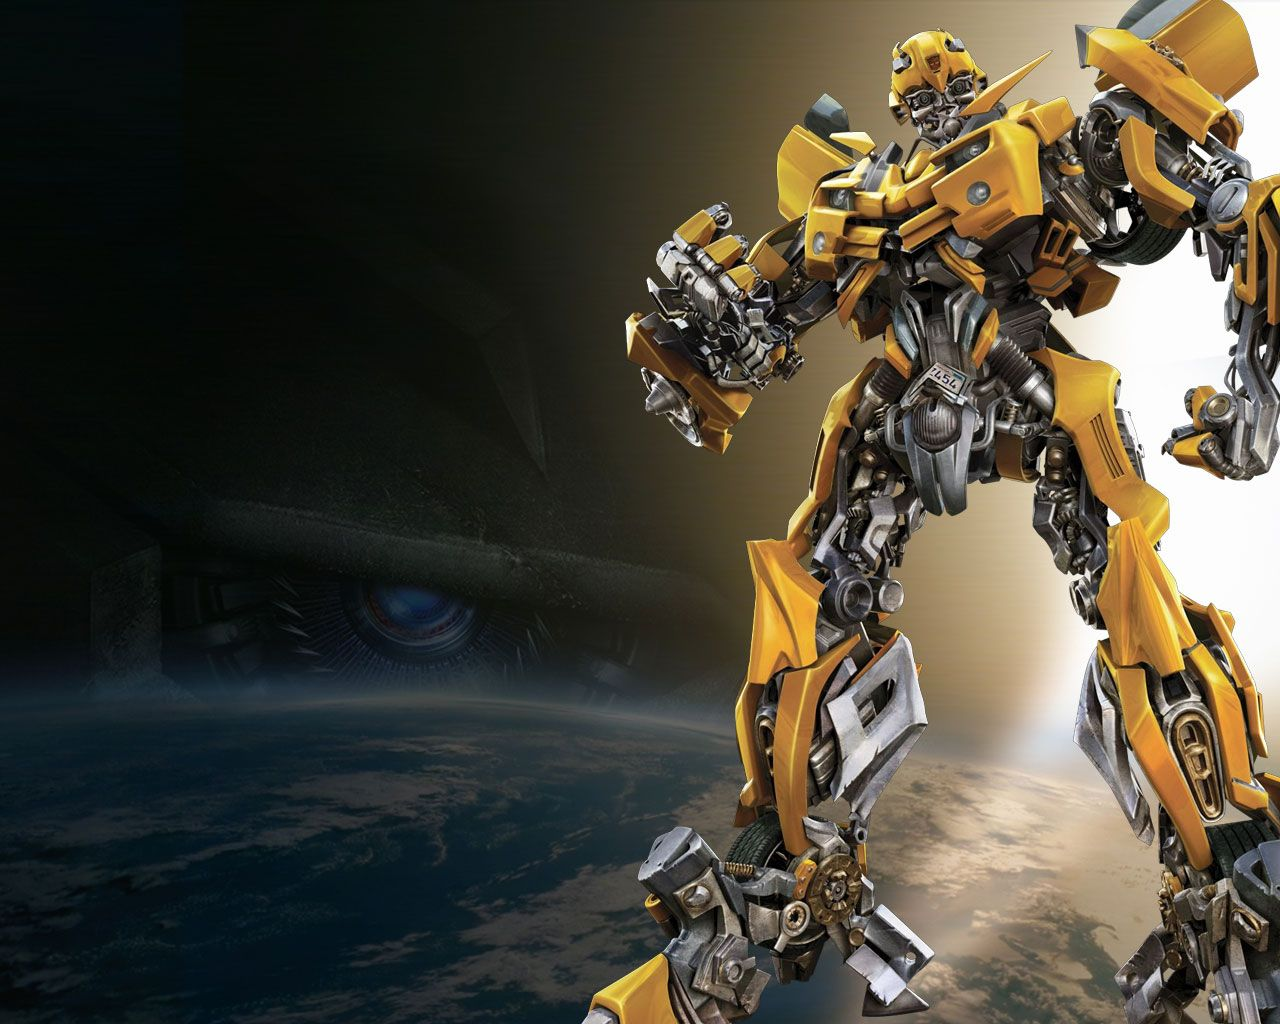 Pin By French Violet On It S All A Fantasy Transformers Movie Transformers Poster Transformers